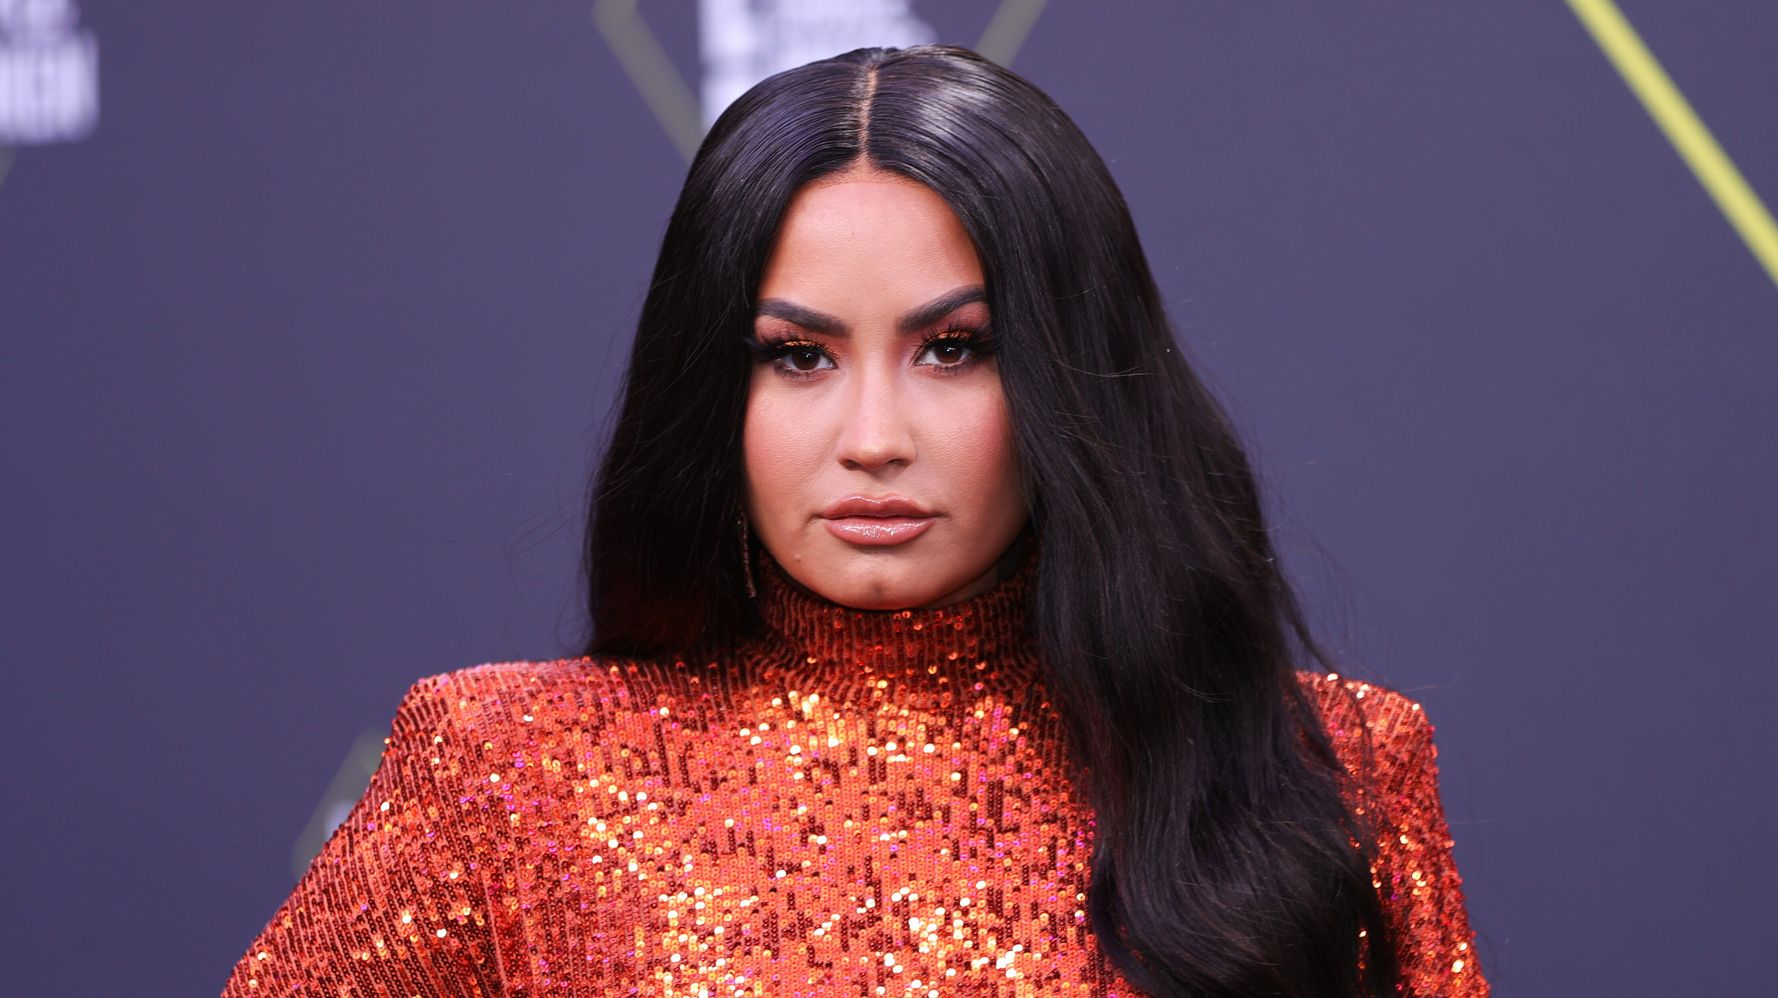 Demi Lovato Gets A Jaw-Dropping New Look And Fans Are 'Obsessed'